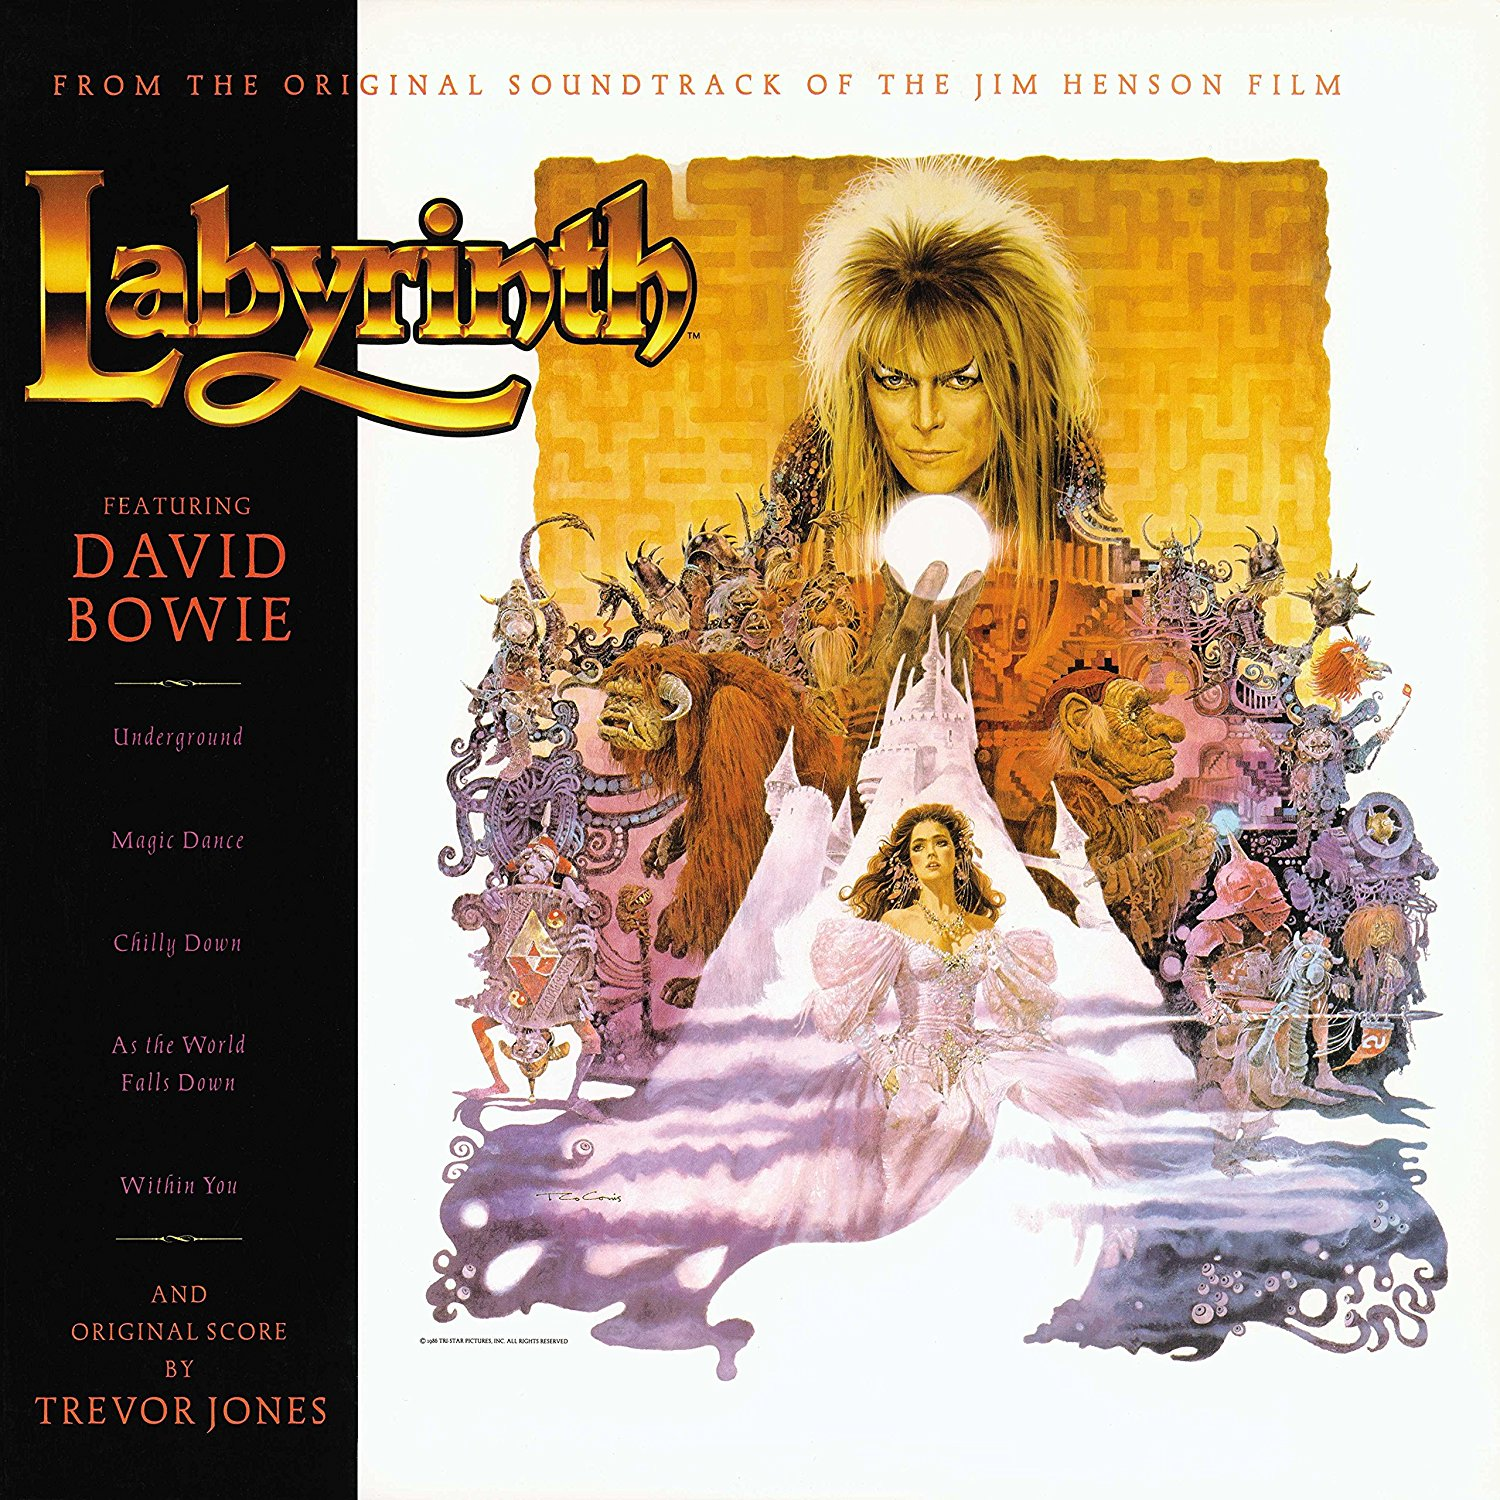 David Bowie \'Labyrinth\' Soundtrack Reissue Coming   Best Classic Bands